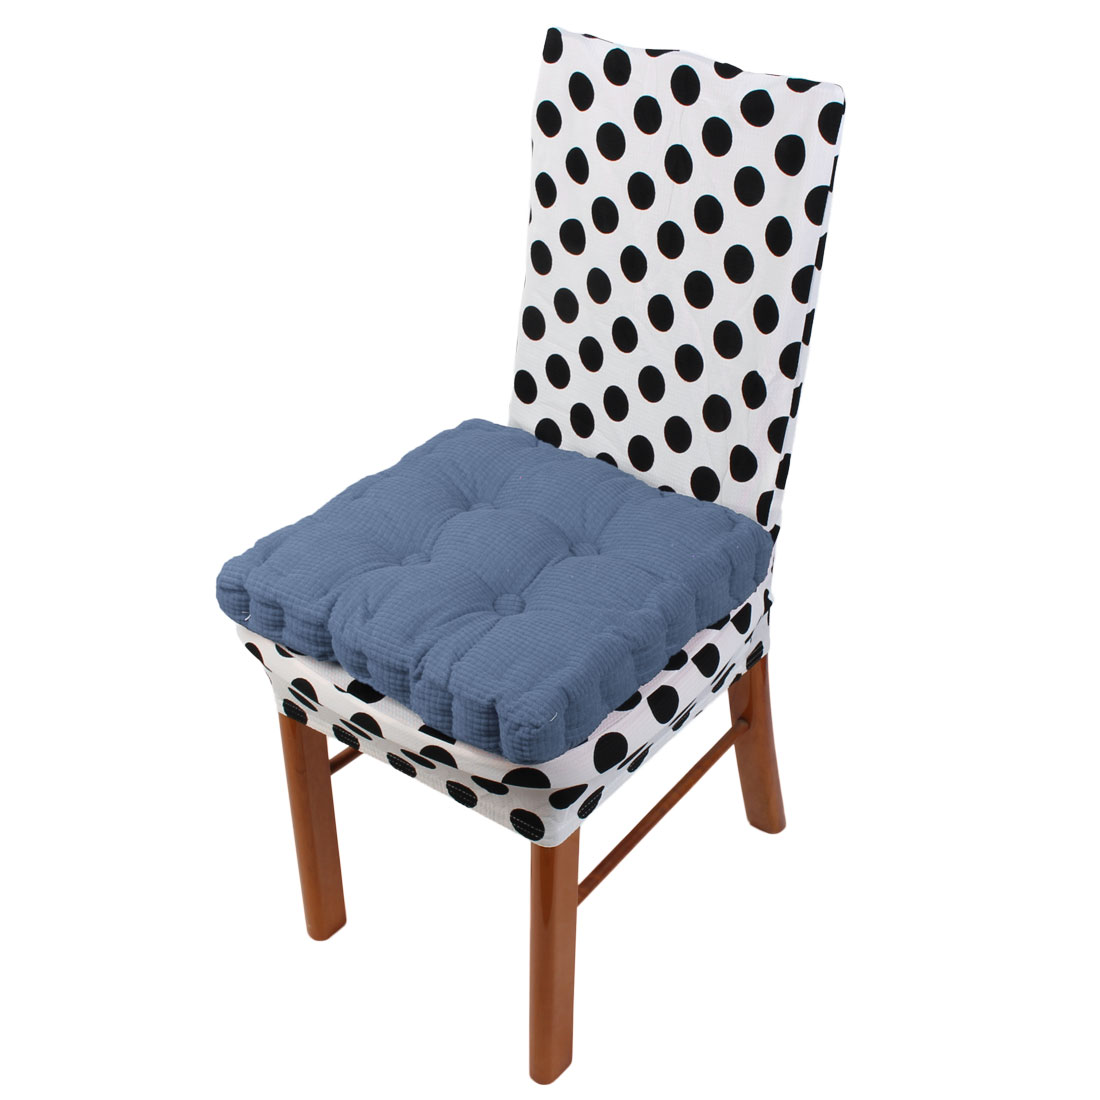 Home Garden Patio Square Shaped Anti Slip Seat Cushion Chair Pad by Unique-Bargains